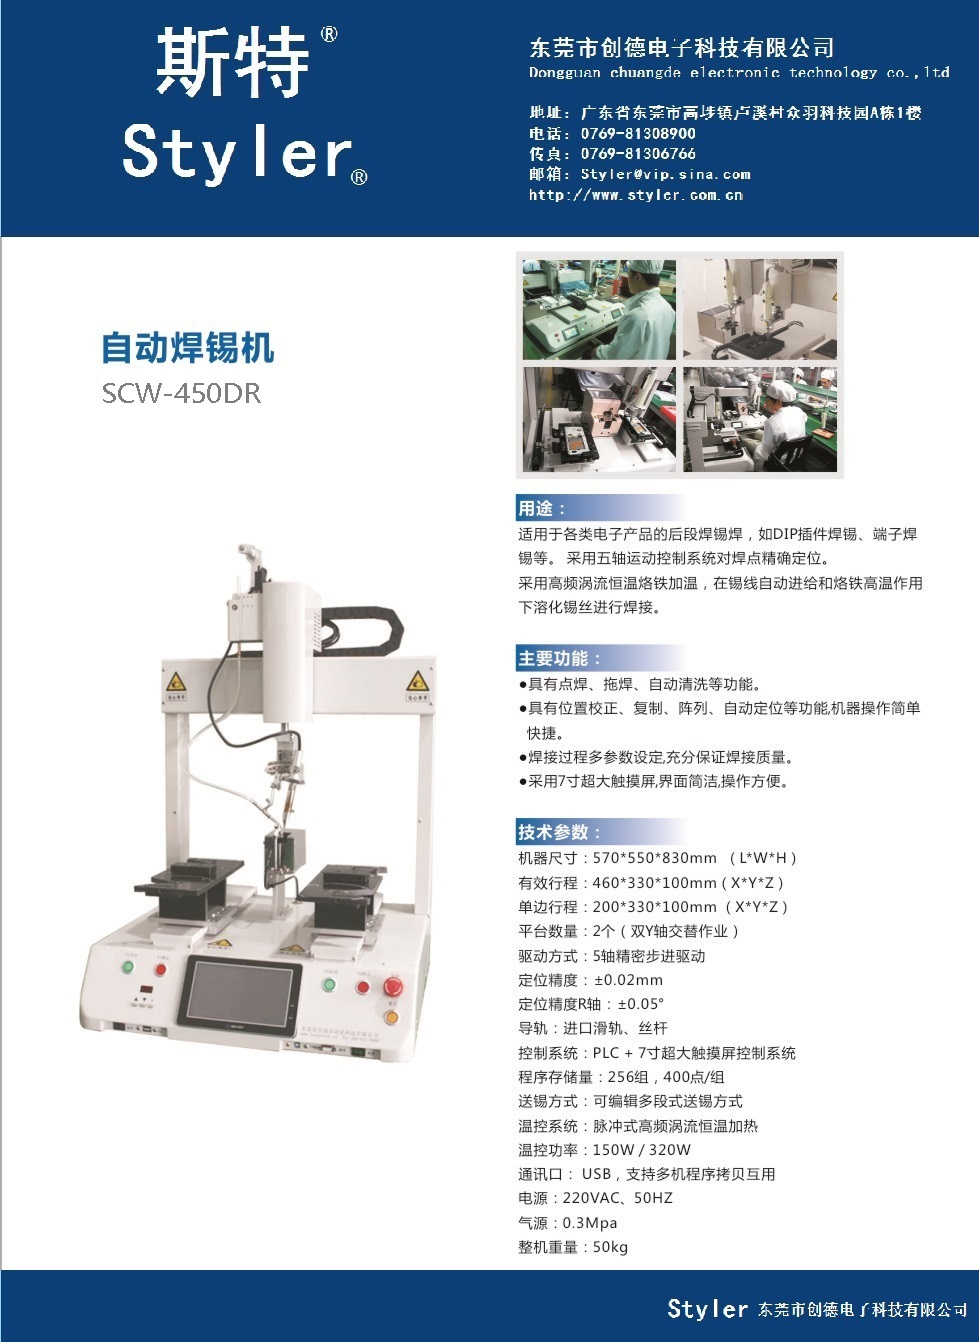 SCW-450DR